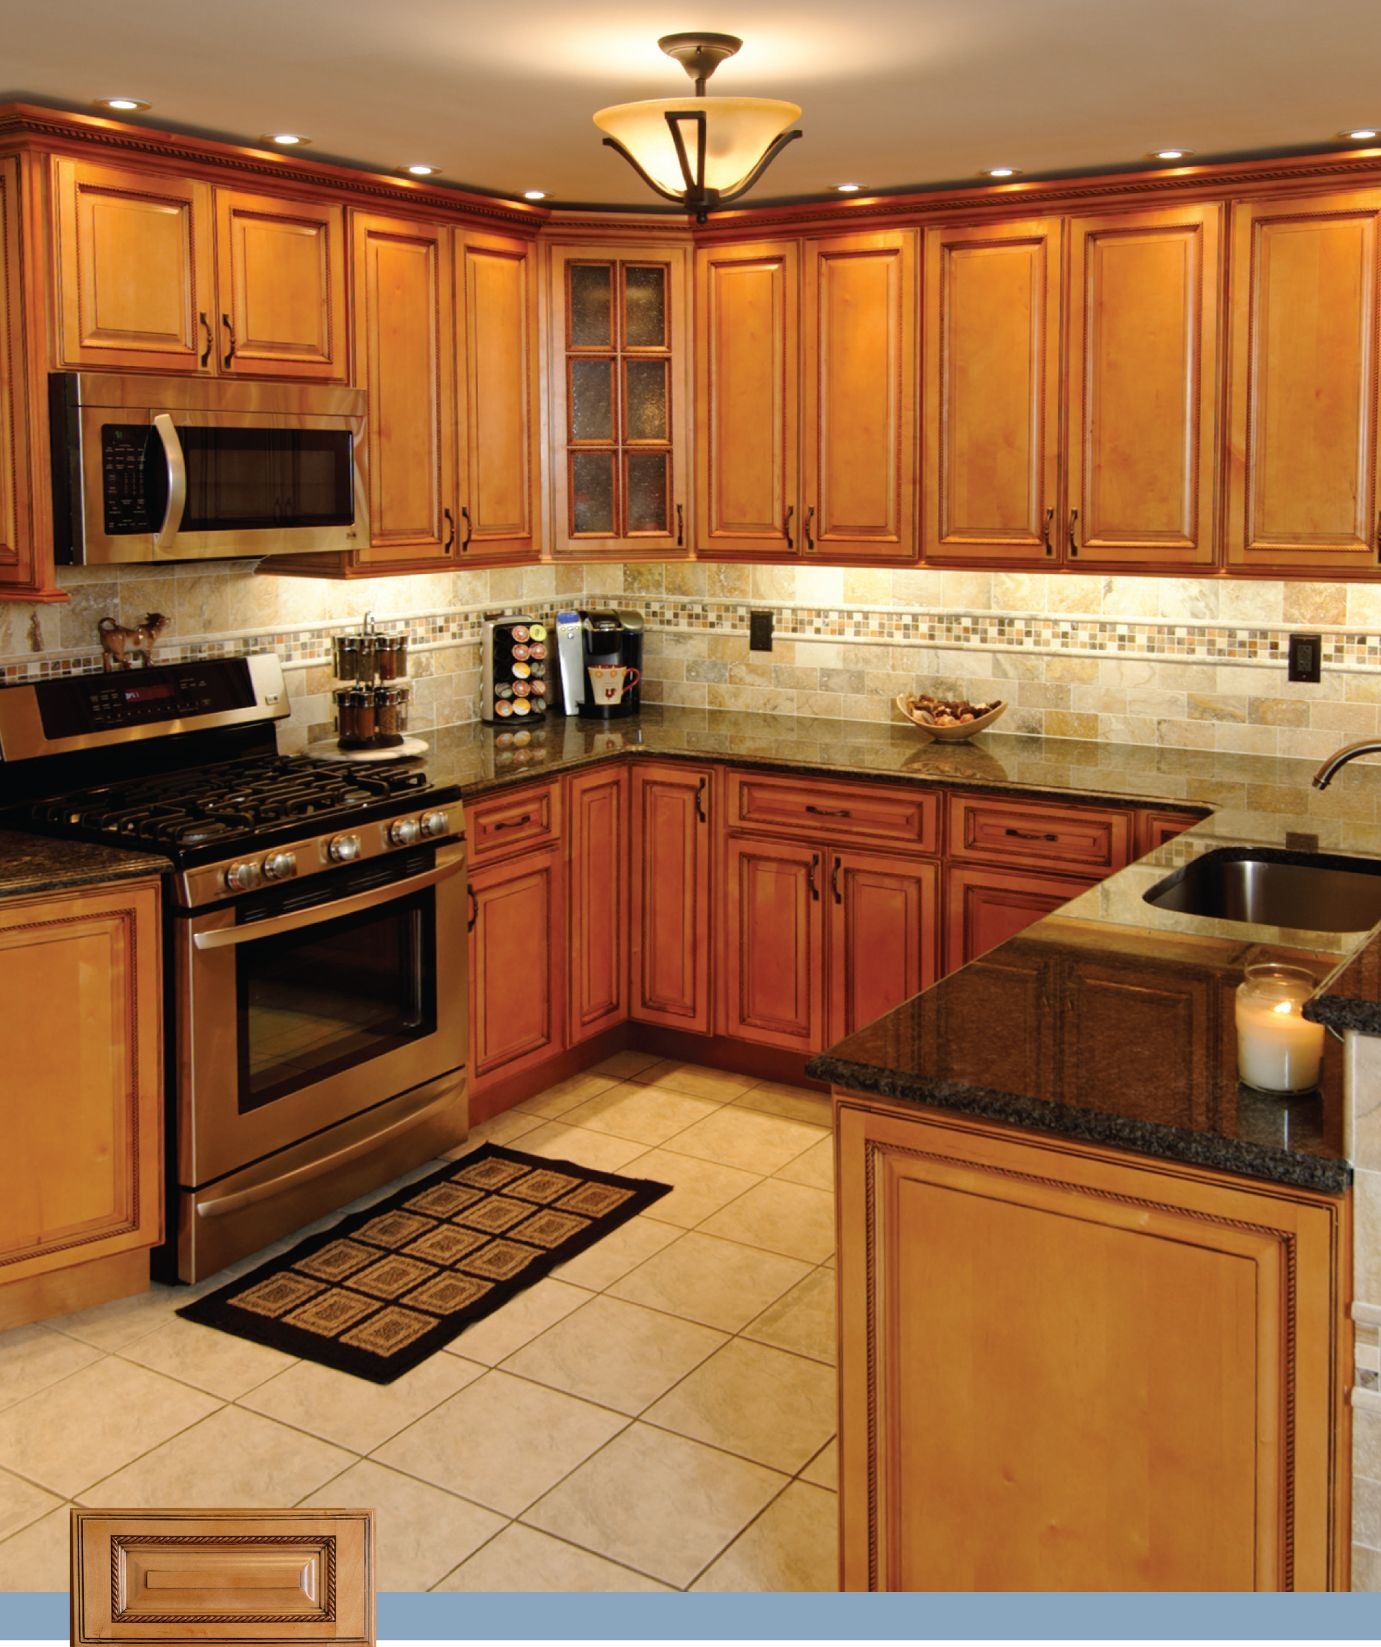 rta kitchen cabinets kitchen cabinets design 17 best ideas about Rta Kitchen Cabinets on Pinterest Light oak cabinets Dark counters and Discount cabinets